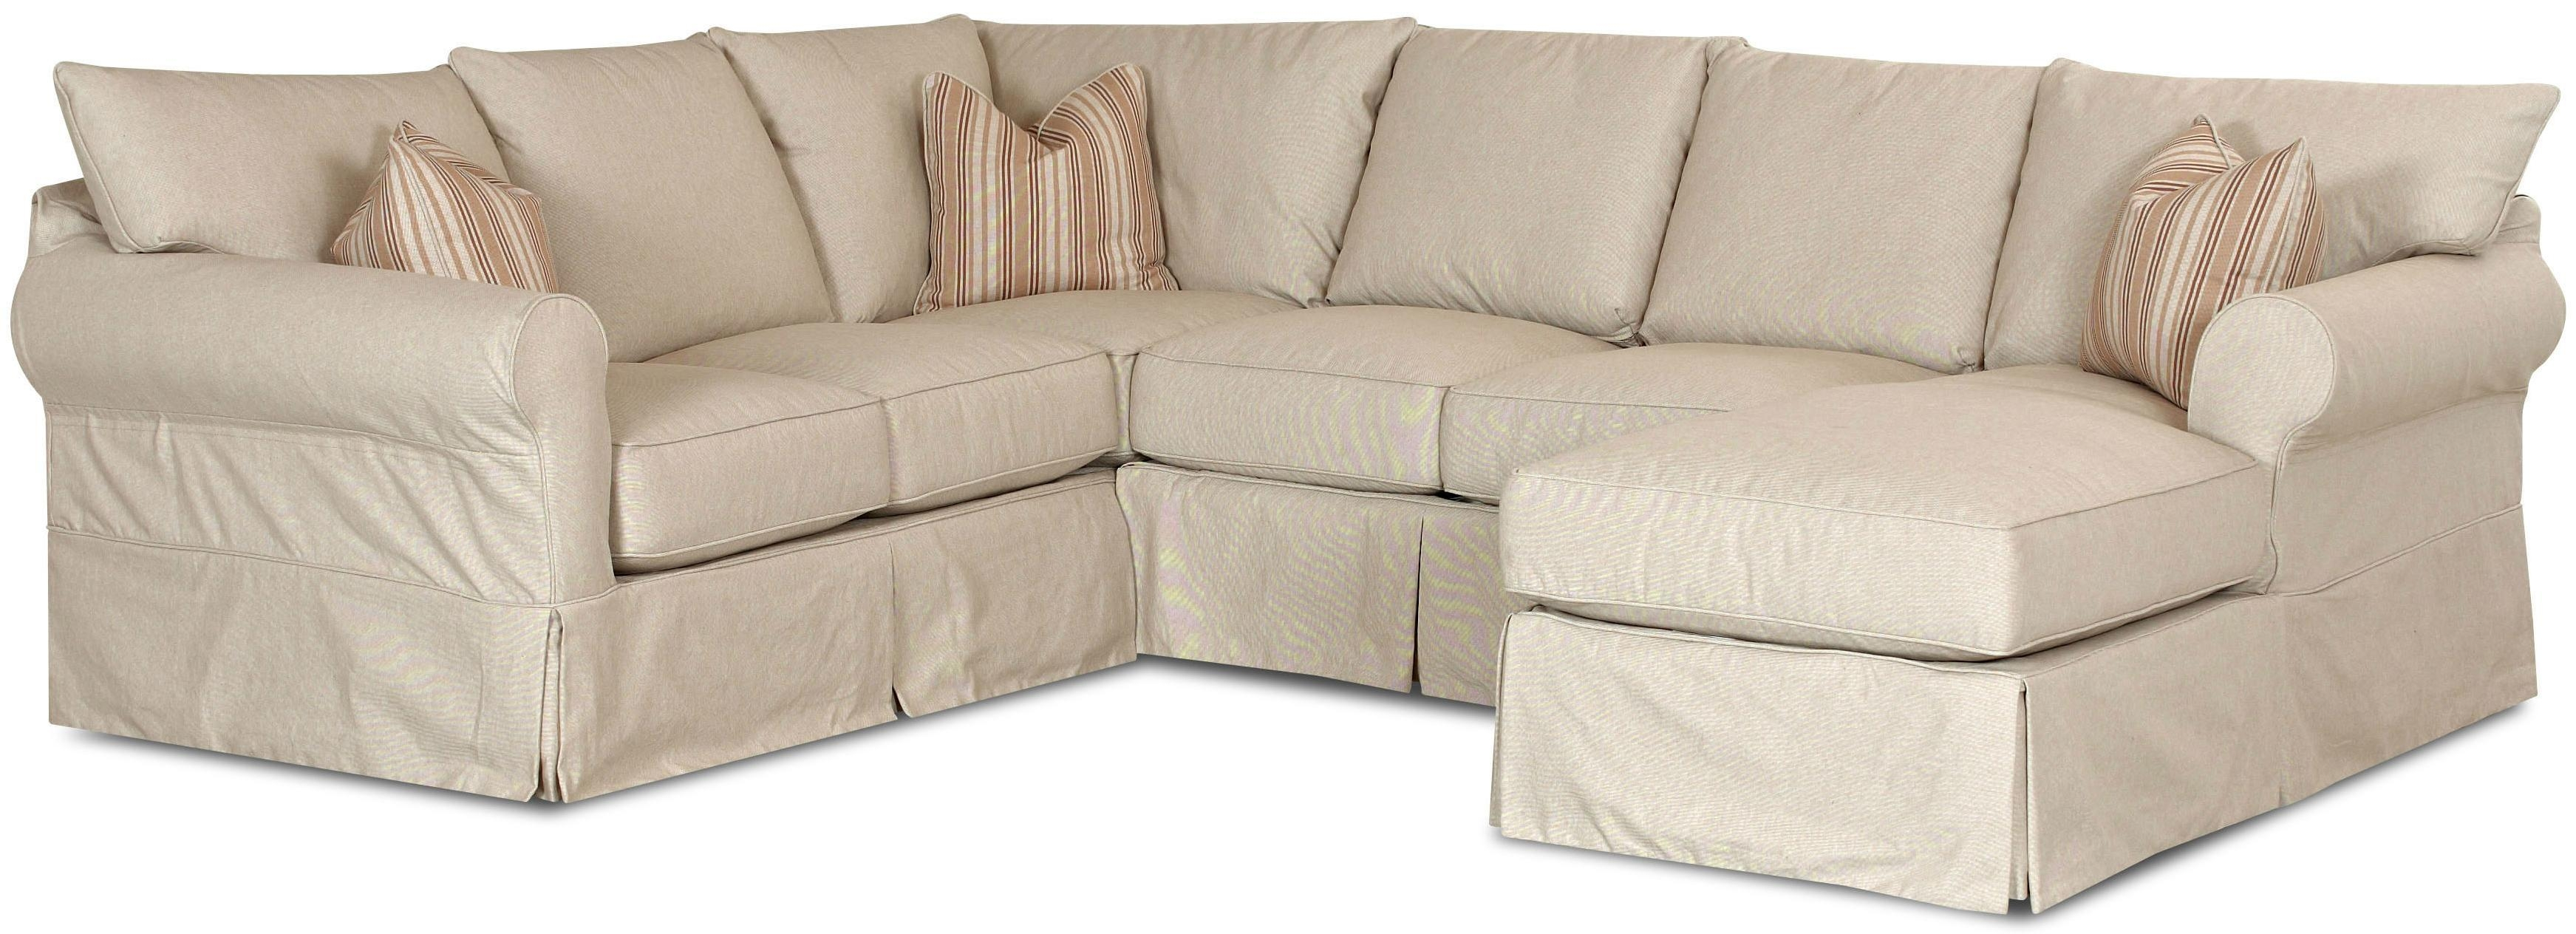 Inspirations: Interesting Furniture Sectional Sofa Slipcovers For Throughout Sectional Sofa Covers (View 3 of 20)